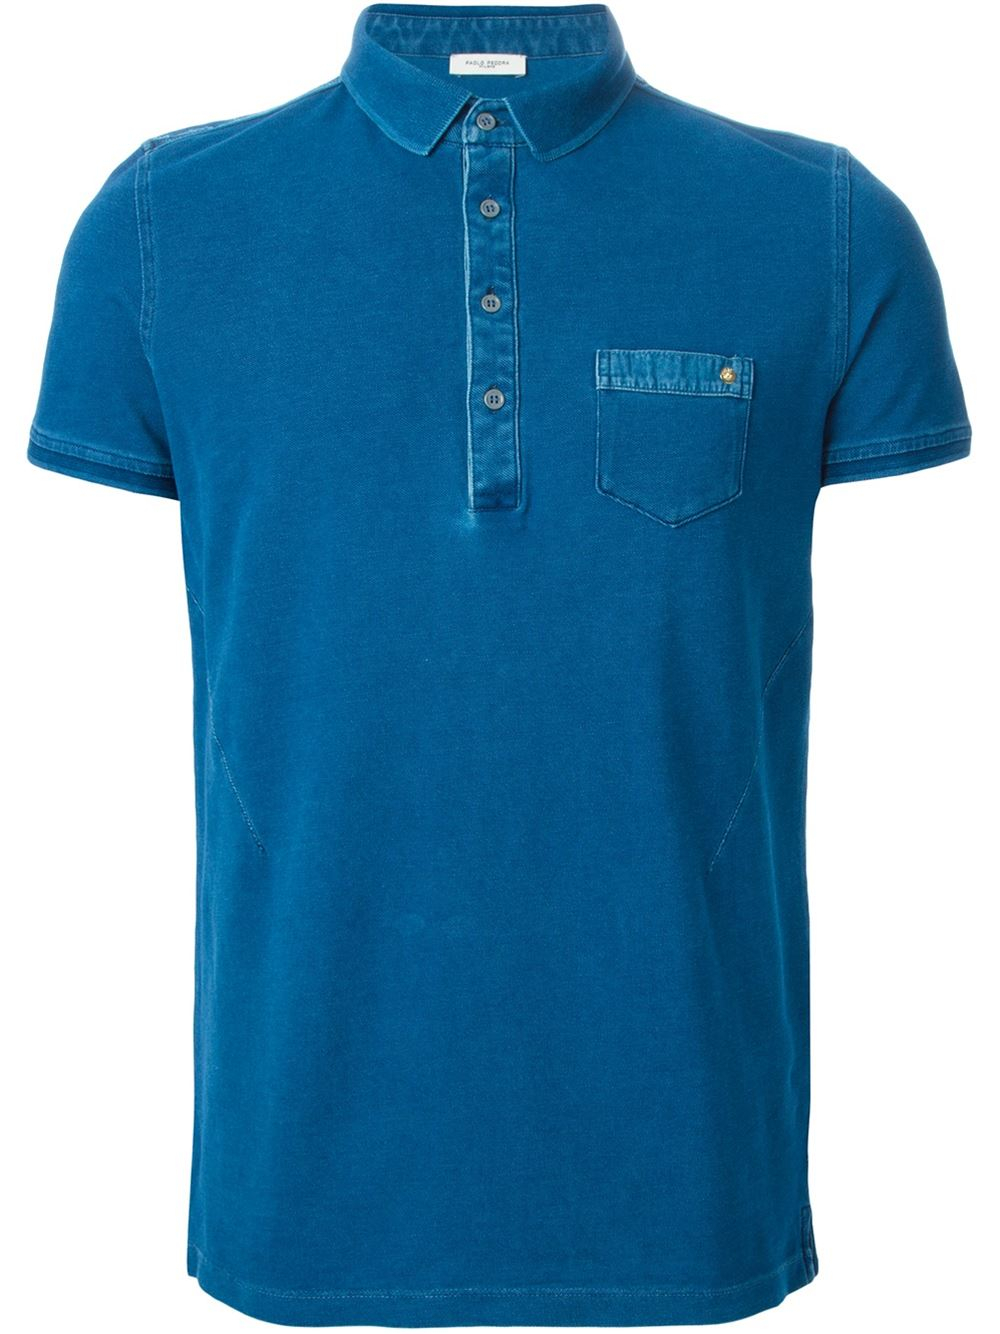 Paolo pecora chest pocket polo shirt in blue for men lyst for Men s polo shirts with chest pocket